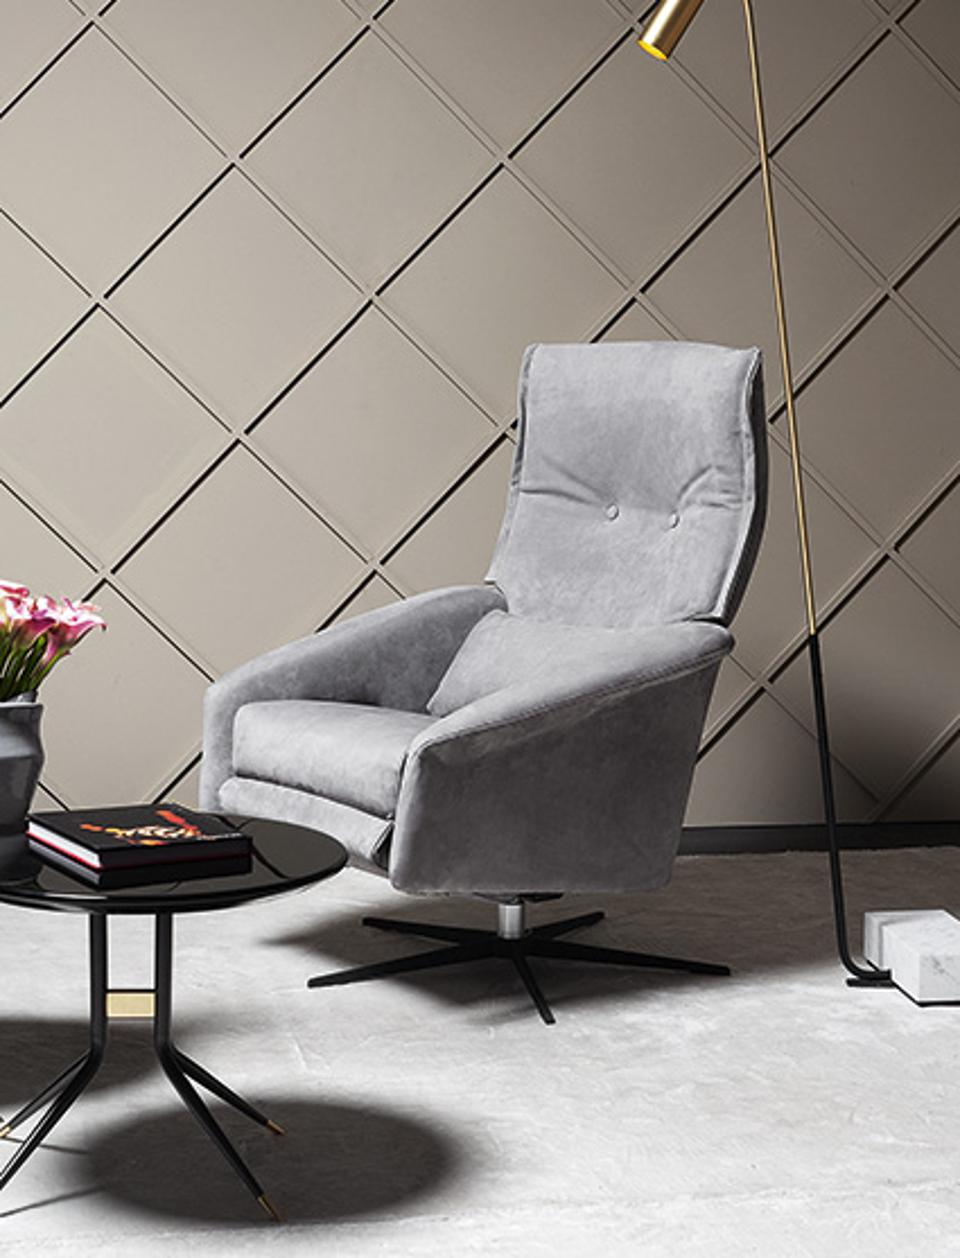 VIBIEFFE Dream Chair is build with motors so you can adjust backrest, seat and footrest.